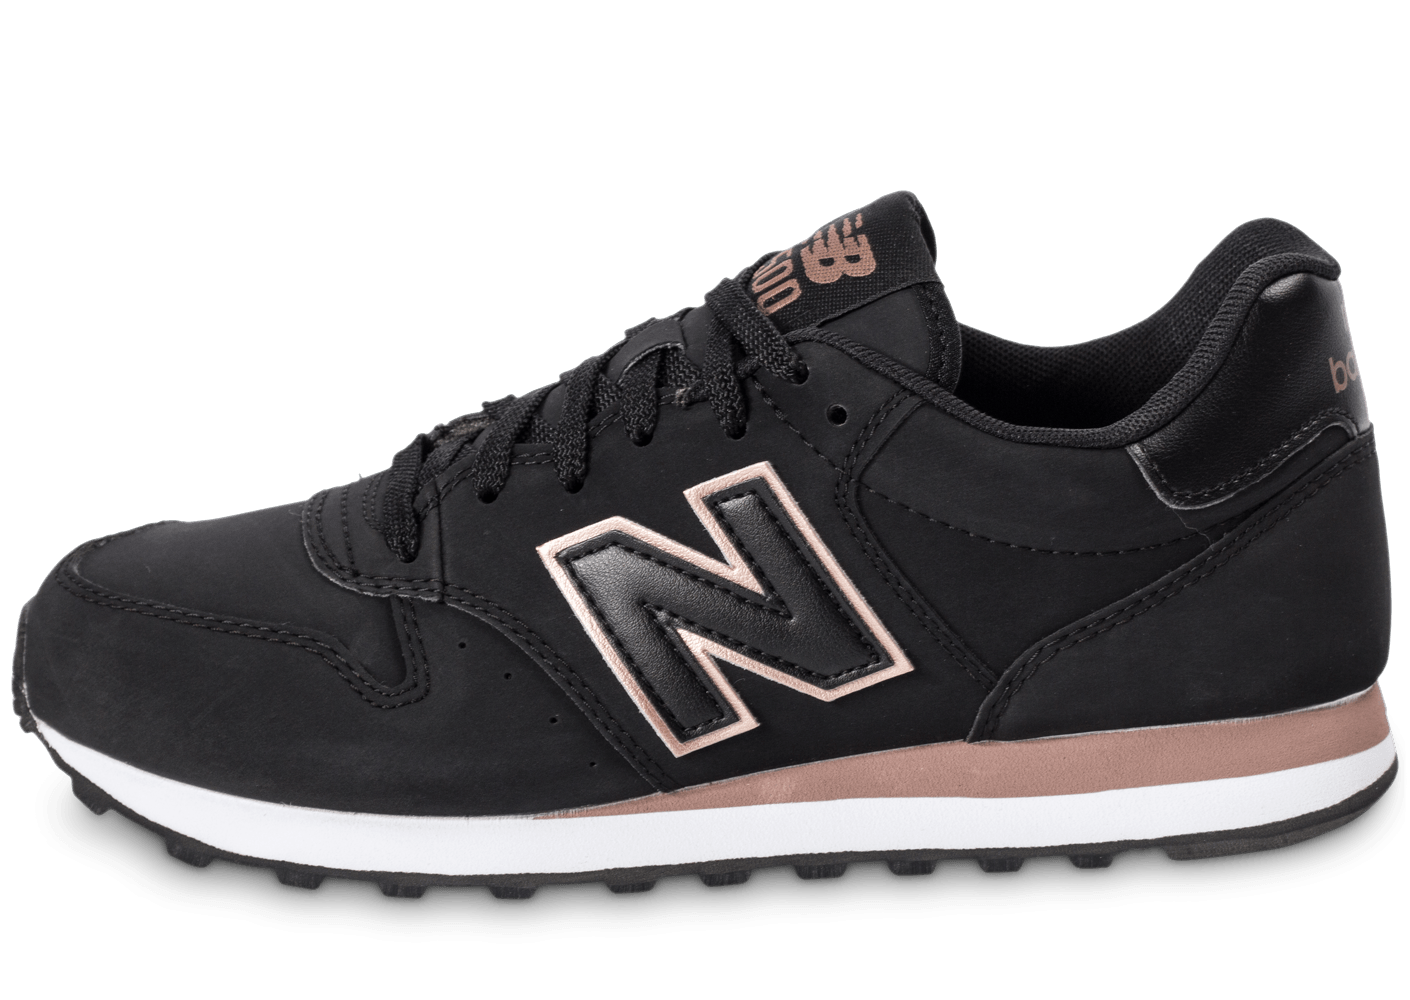 chaussure new balance homme noir. Black Bedroom Furniture Sets. Home Design Ideas